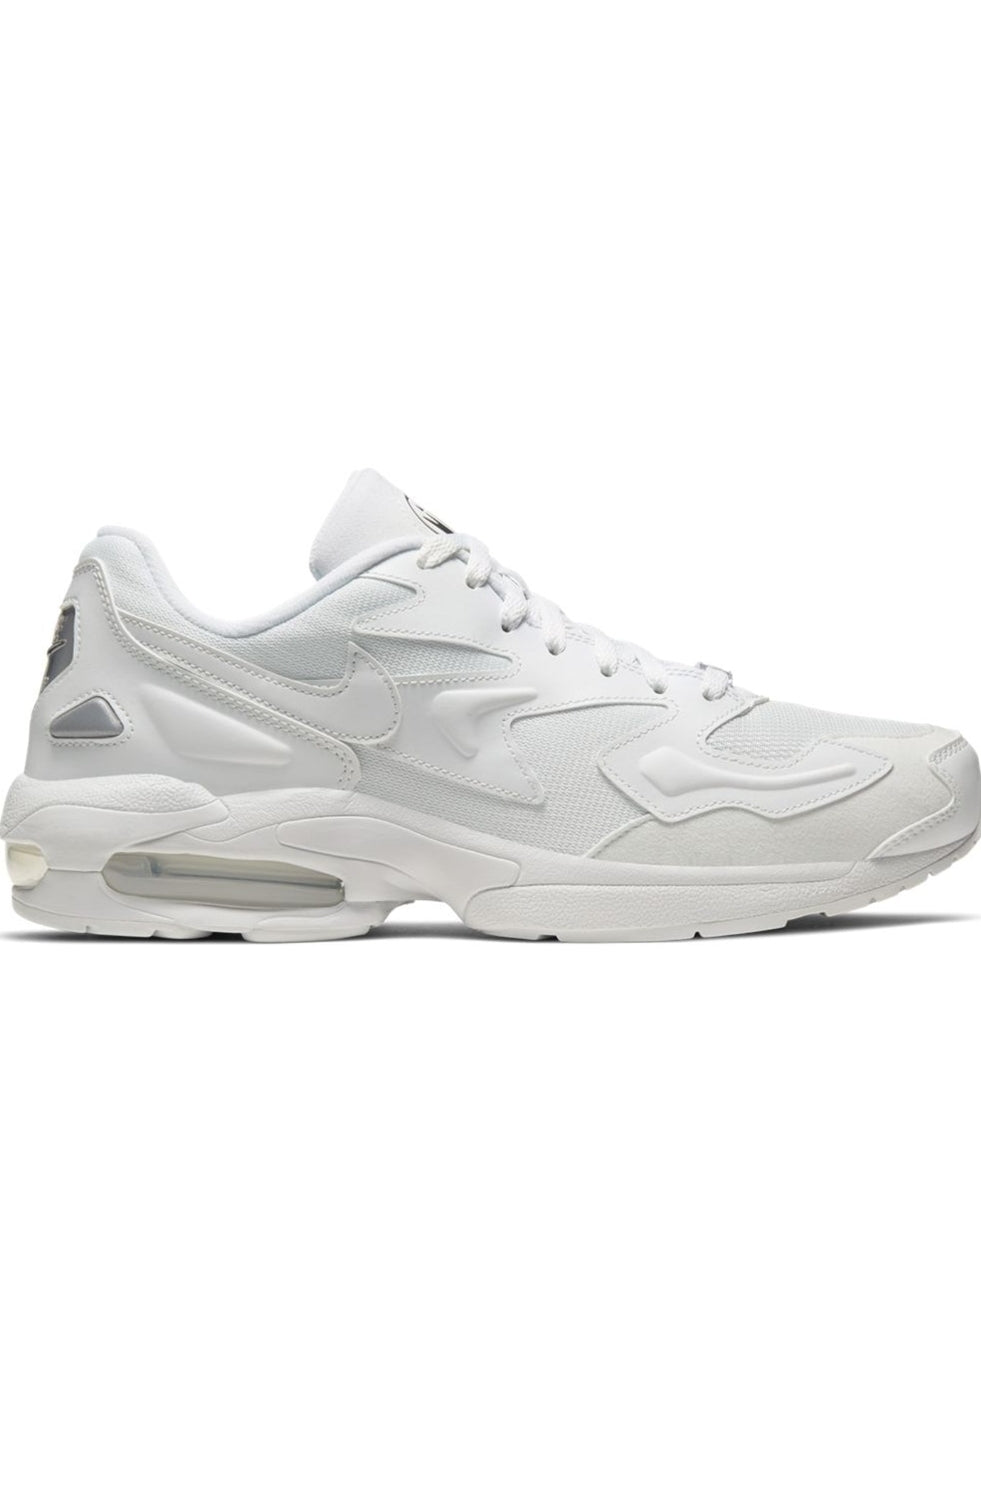 Air Max2 Light Triple White - leaders1354